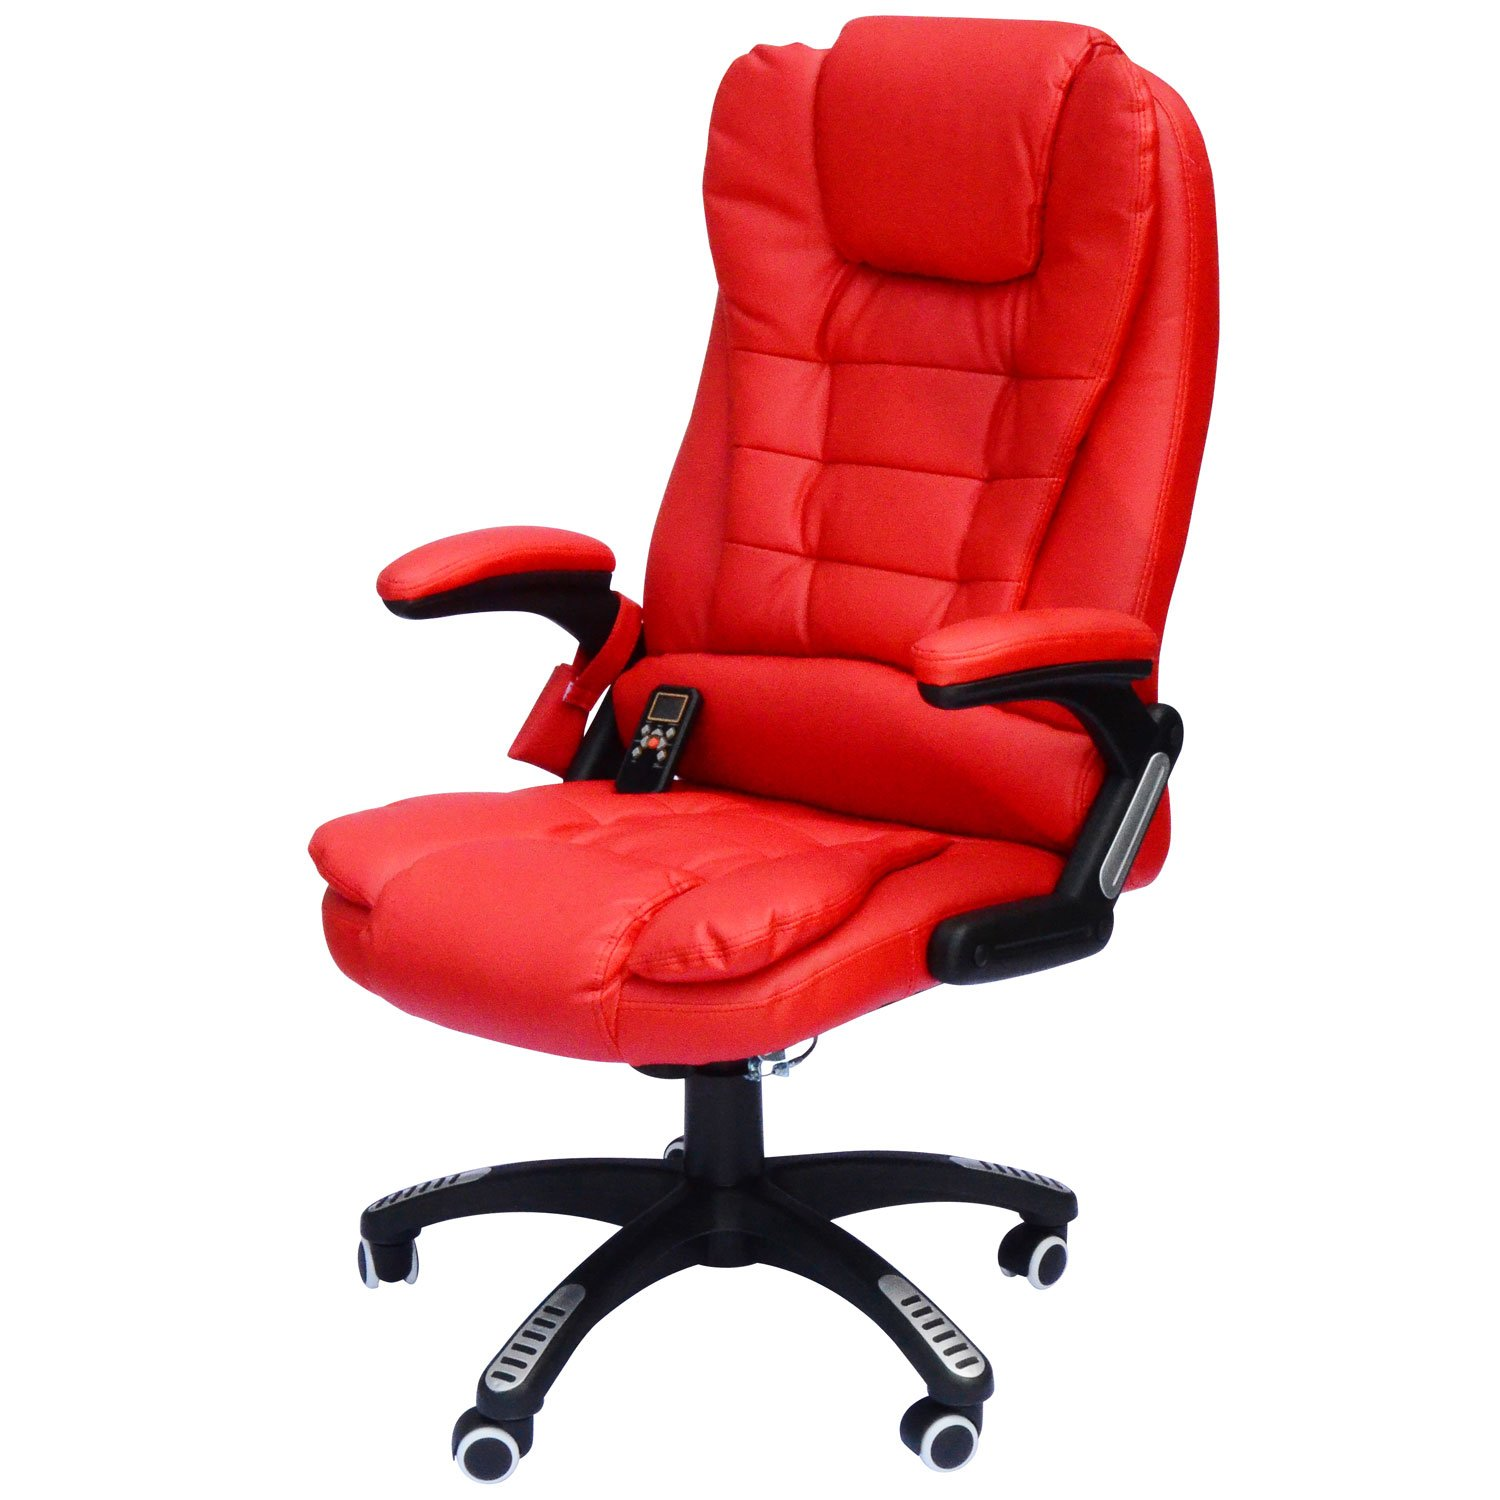 red office chairs. HomCom Executive Ergonomic PU Leather Heated Vibrating Massage Office Chair - Red: Amazon.co.uk: Products Red Chairs